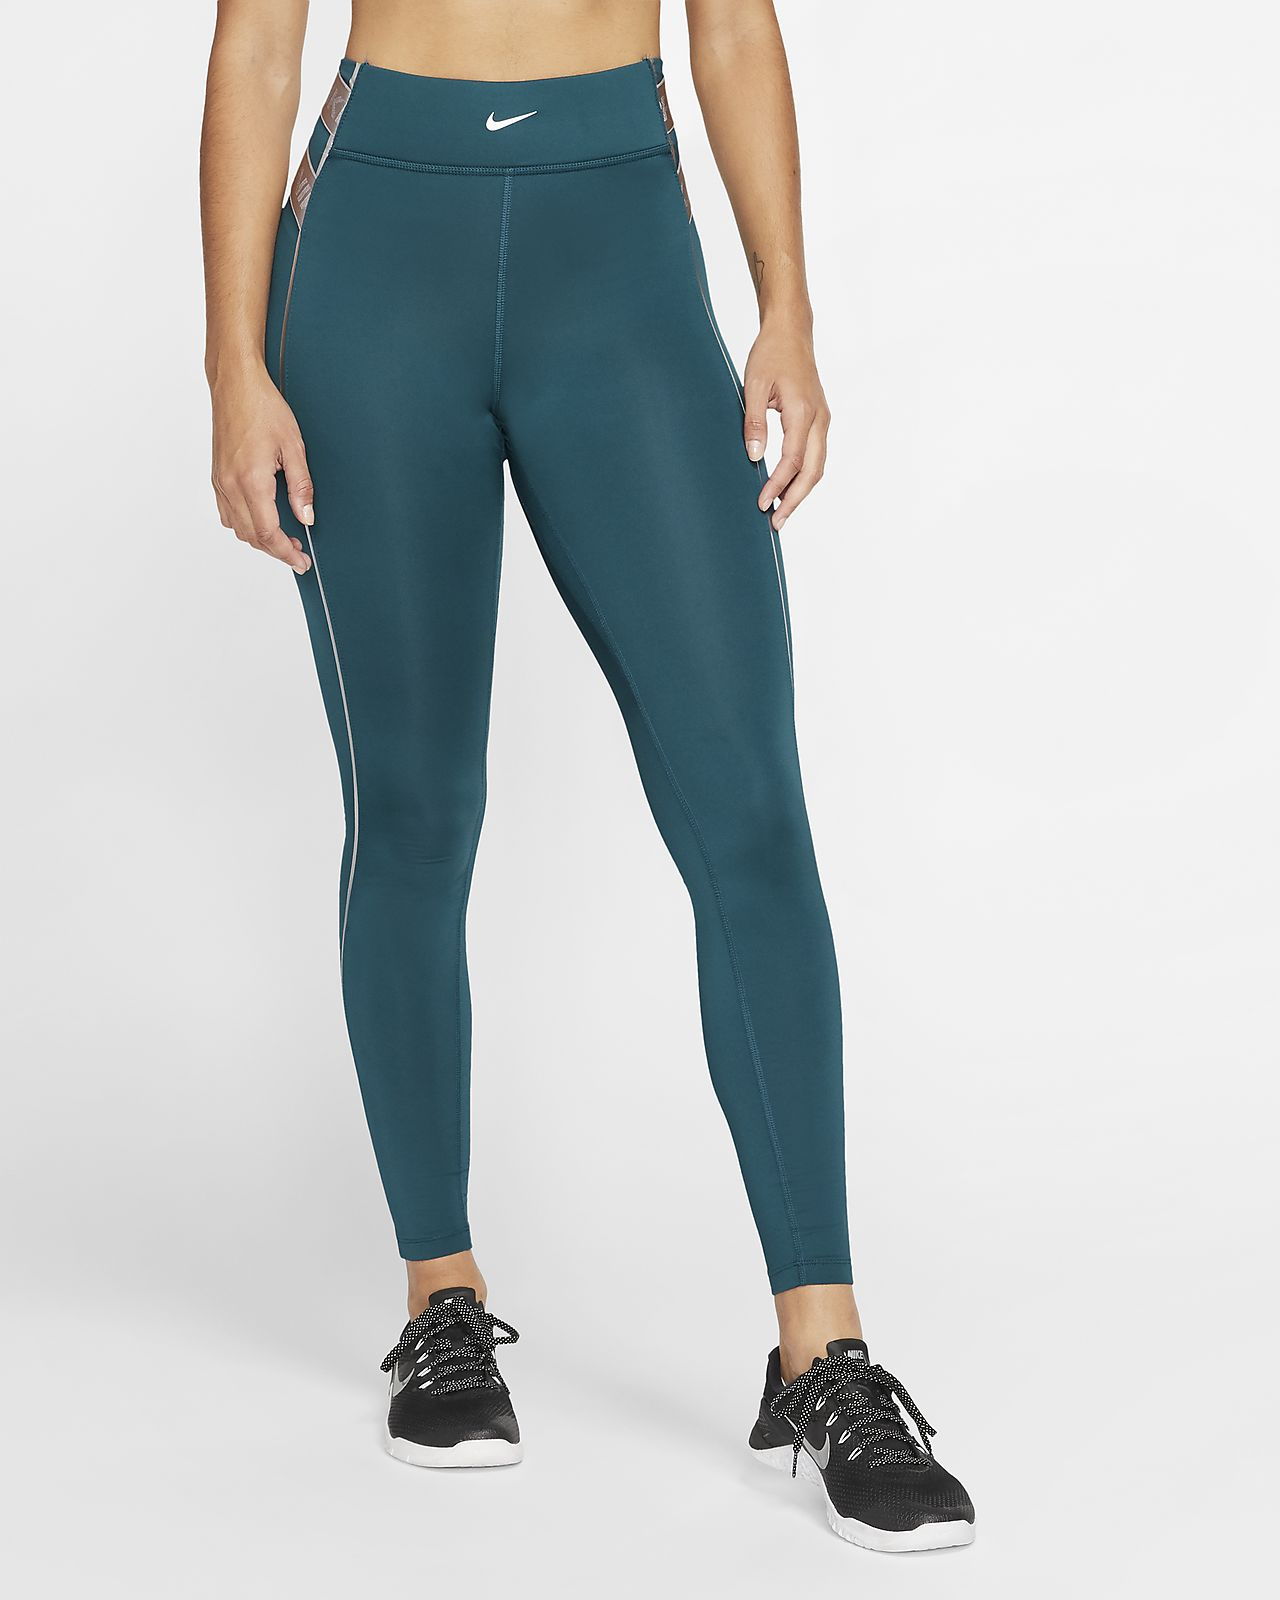 Nike Pro HyperWarm Women's Leggings